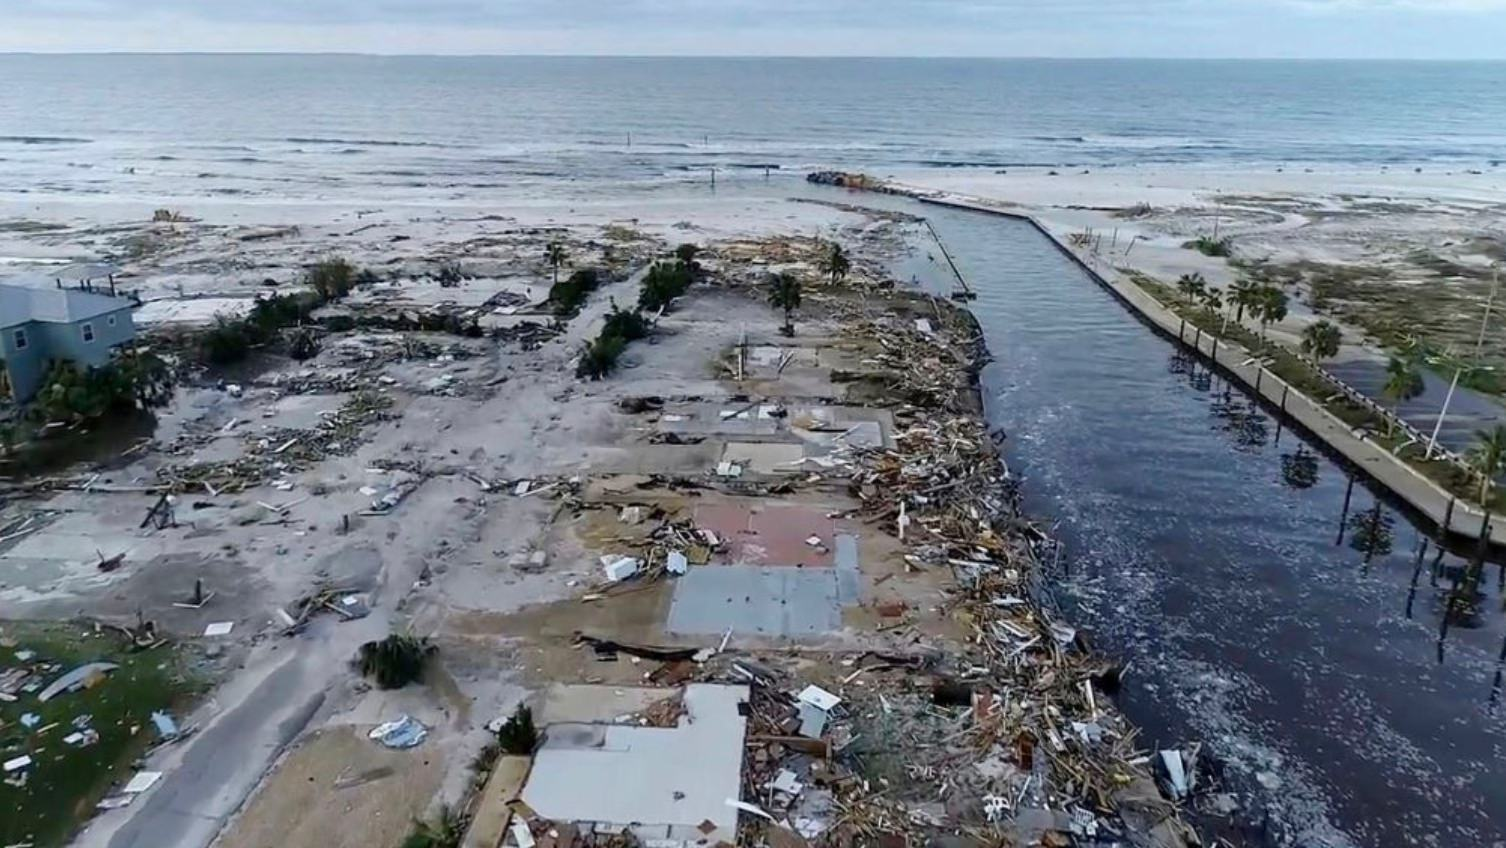 Drone Video Shows Hurricane Michael Caused Widespread Devastation In Mexico Beach Fl